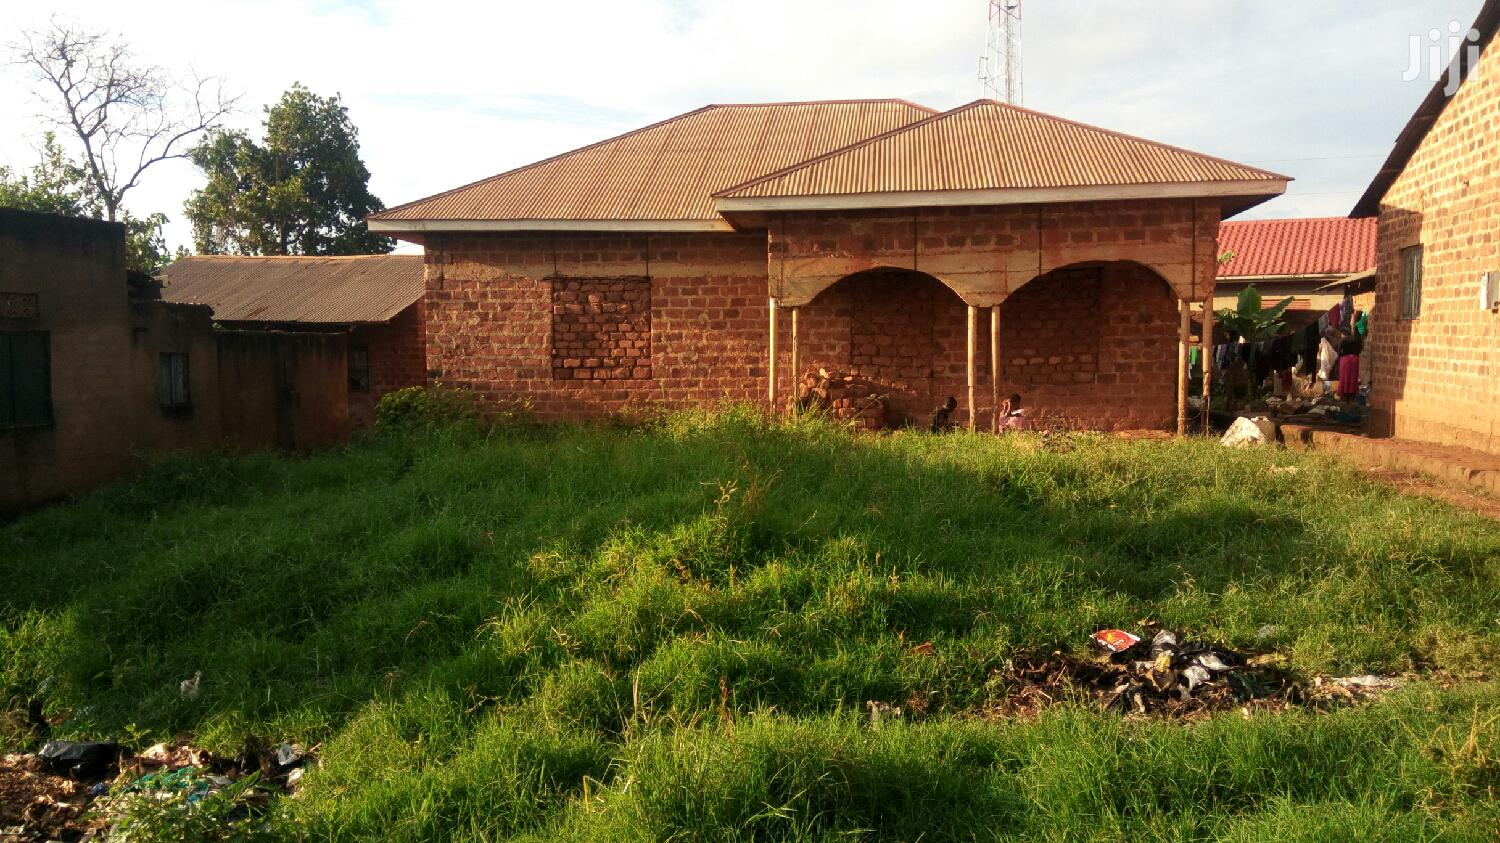 House for Sell in Heart of Gayaza Manywangwa Town With Land Tittle | Houses & Apartments For Sale for sale in Wakiso, Central Region, Uganda